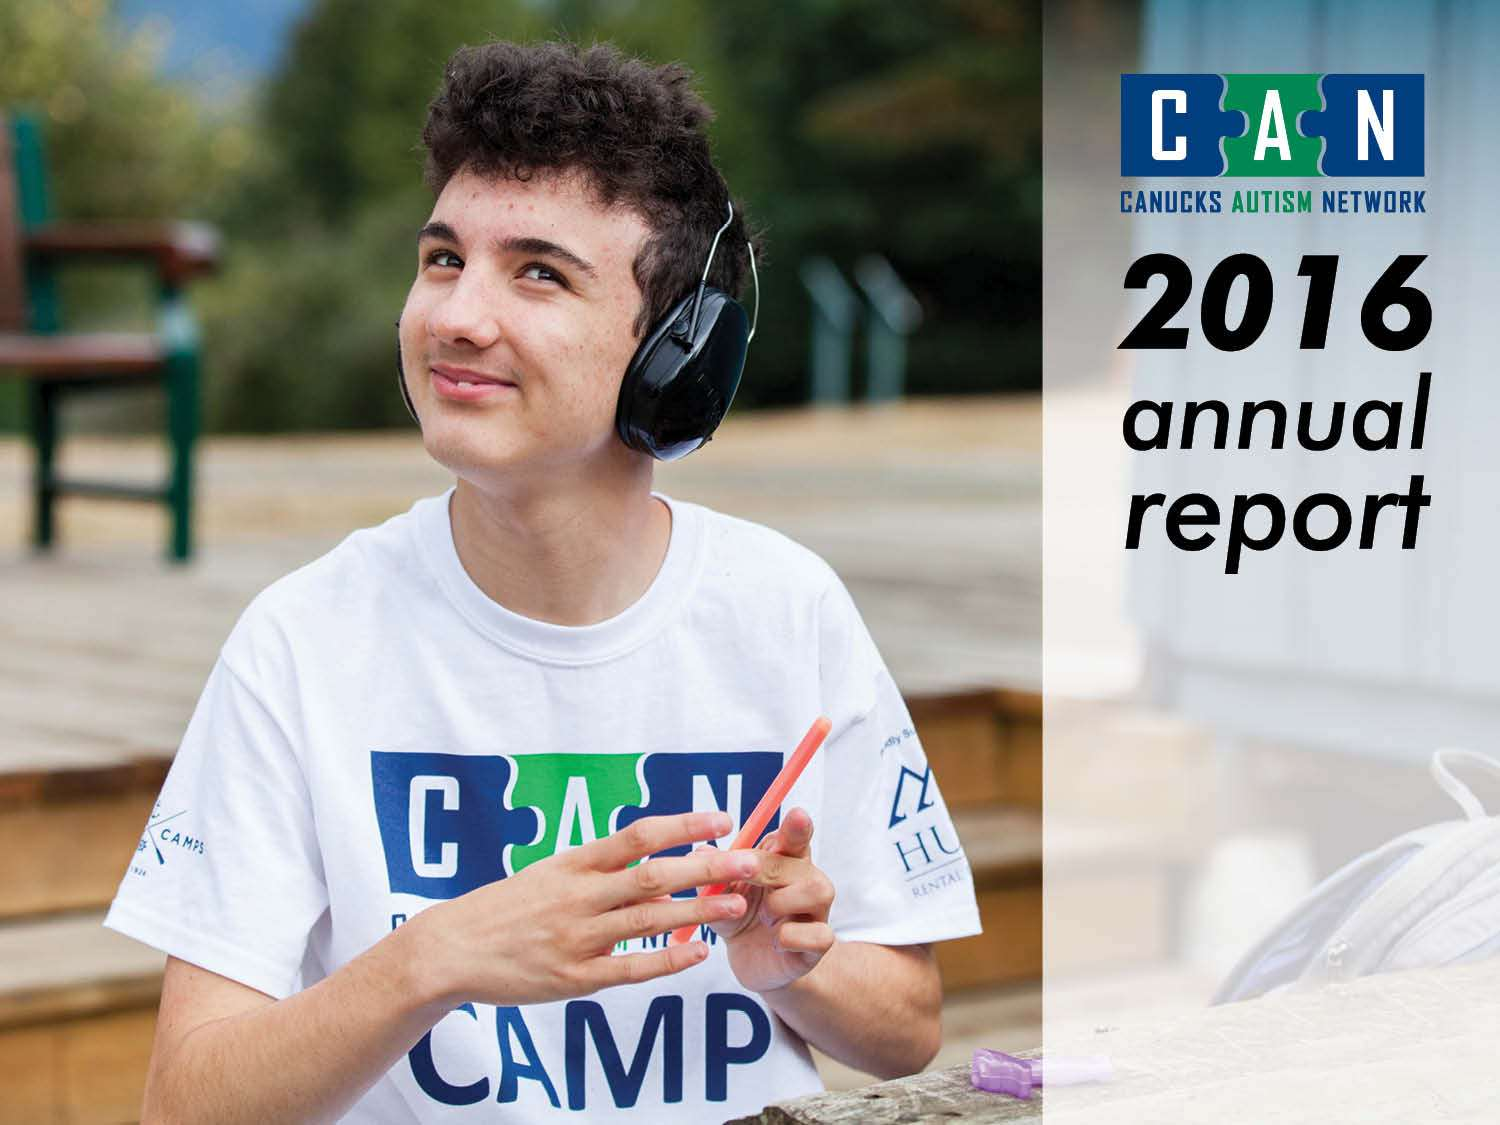 Canucks Autism Network - Annual Report - 2016